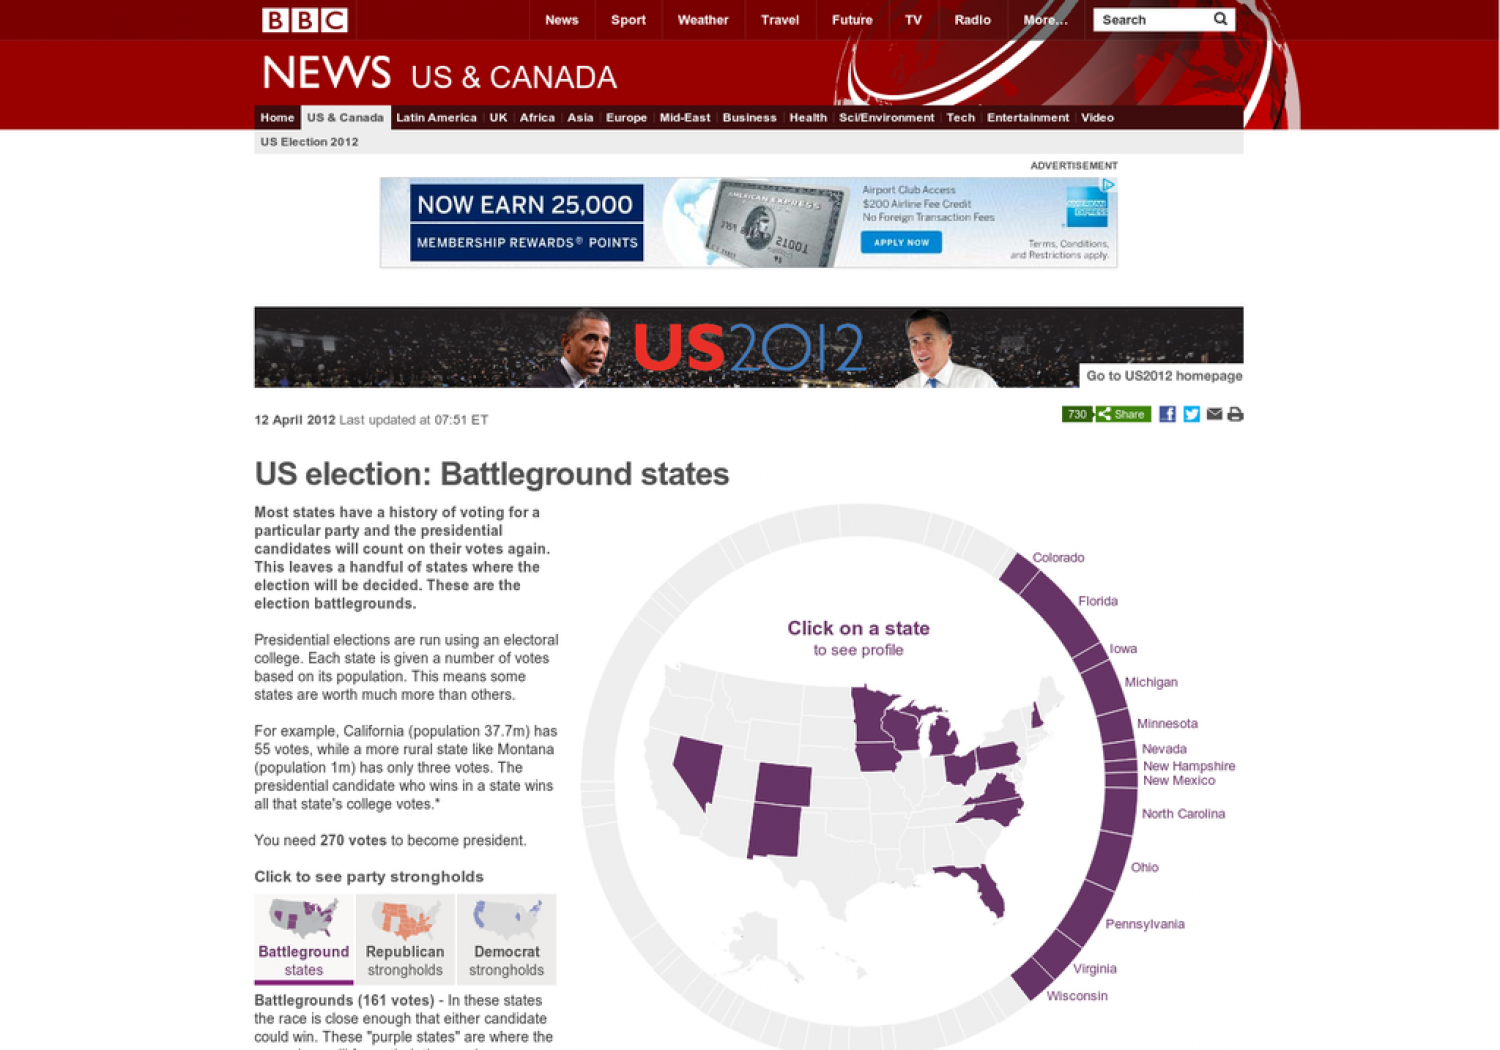 US election: Battleground states Infographic